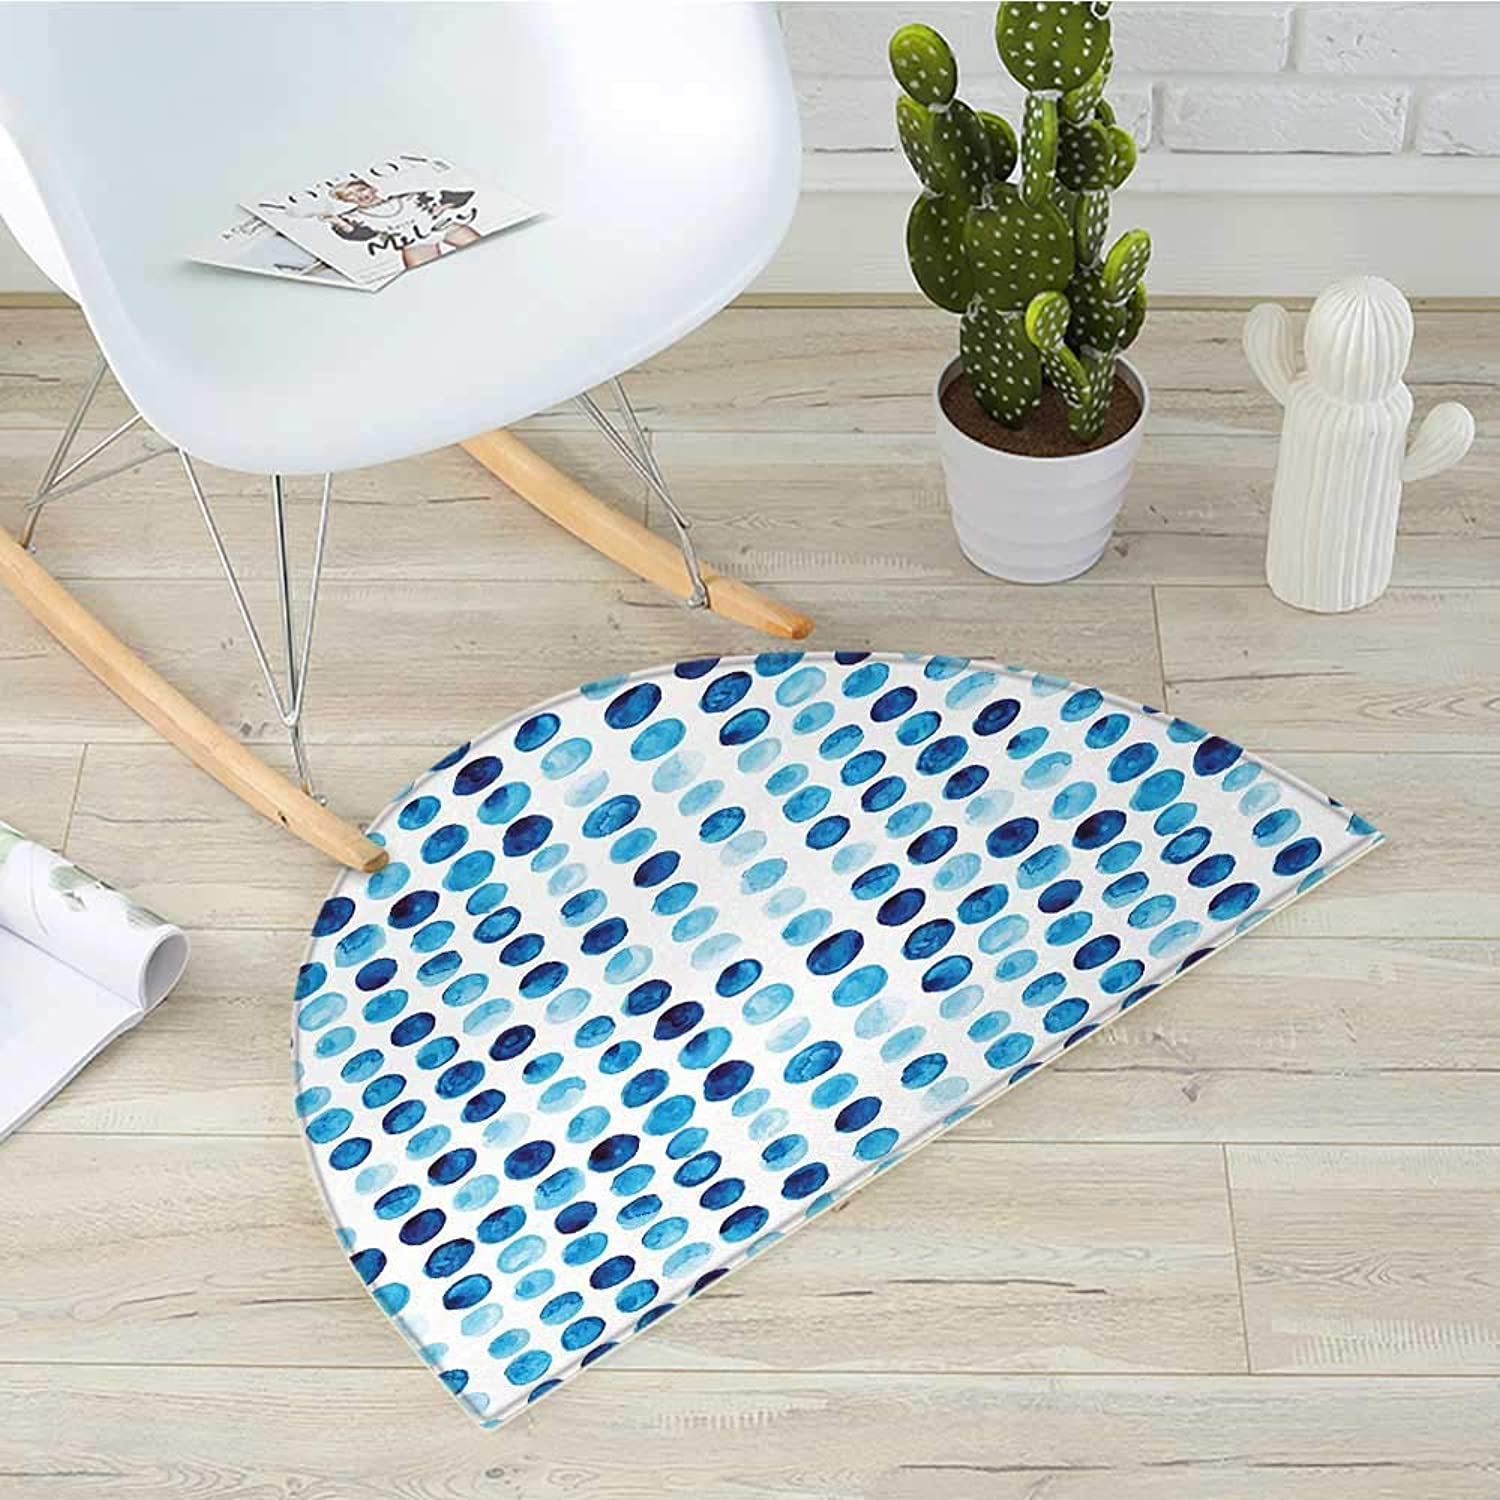 bluee Semicircular CushionRetro Hand Drawn Circles Rounds color Cells Painted Bubble Like Grungy Style Tile Entry Door Mat H 31.5  xD 47.2  bluee Pale bluee